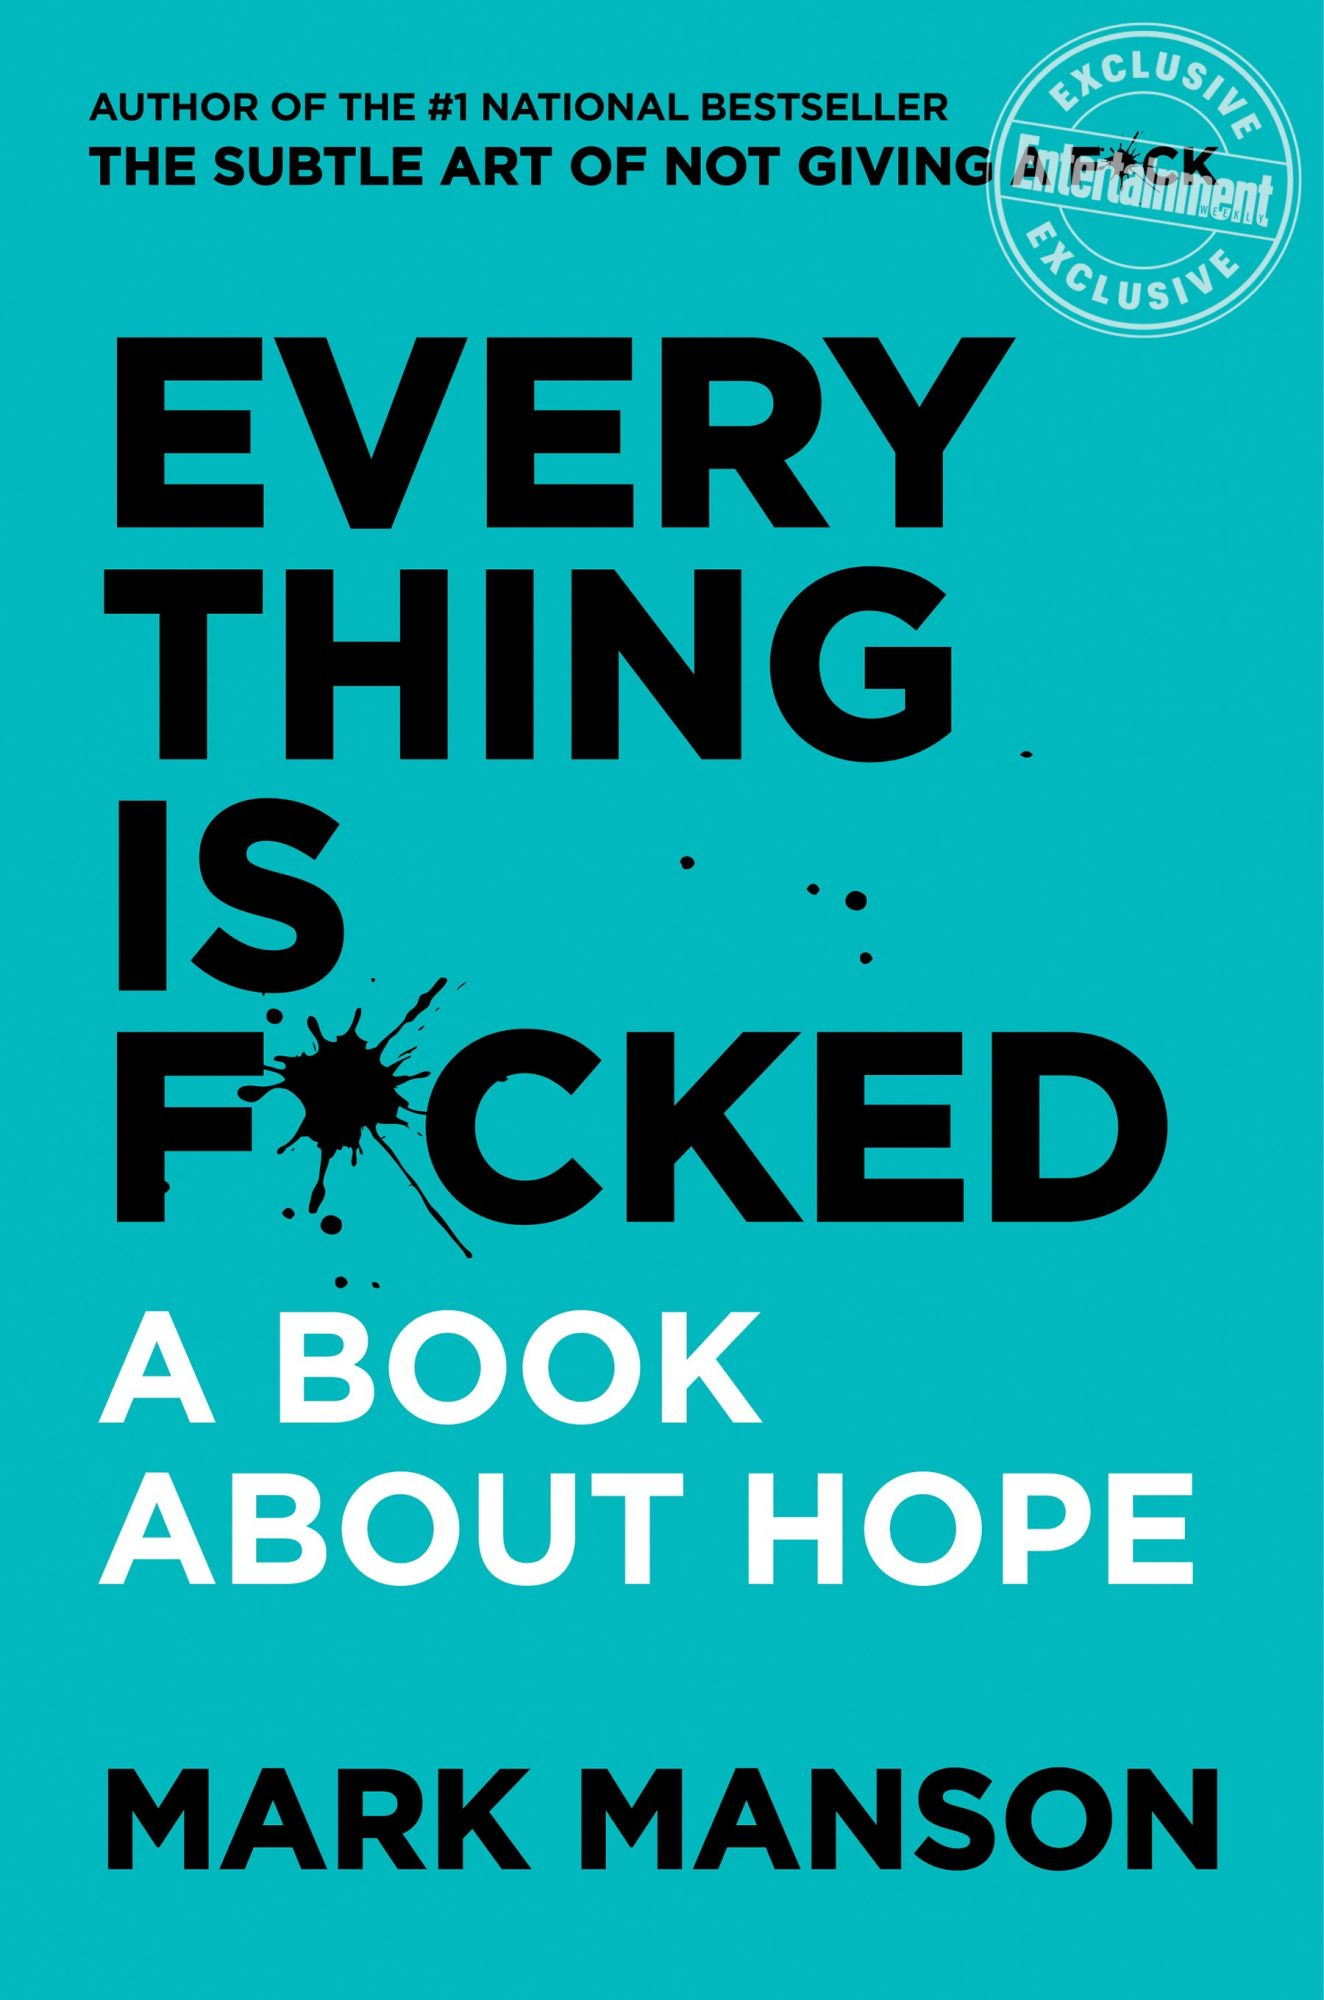 EVERYTHING IS F*CKED: A Book About Hope by Mark MansonCR: HarperCollins